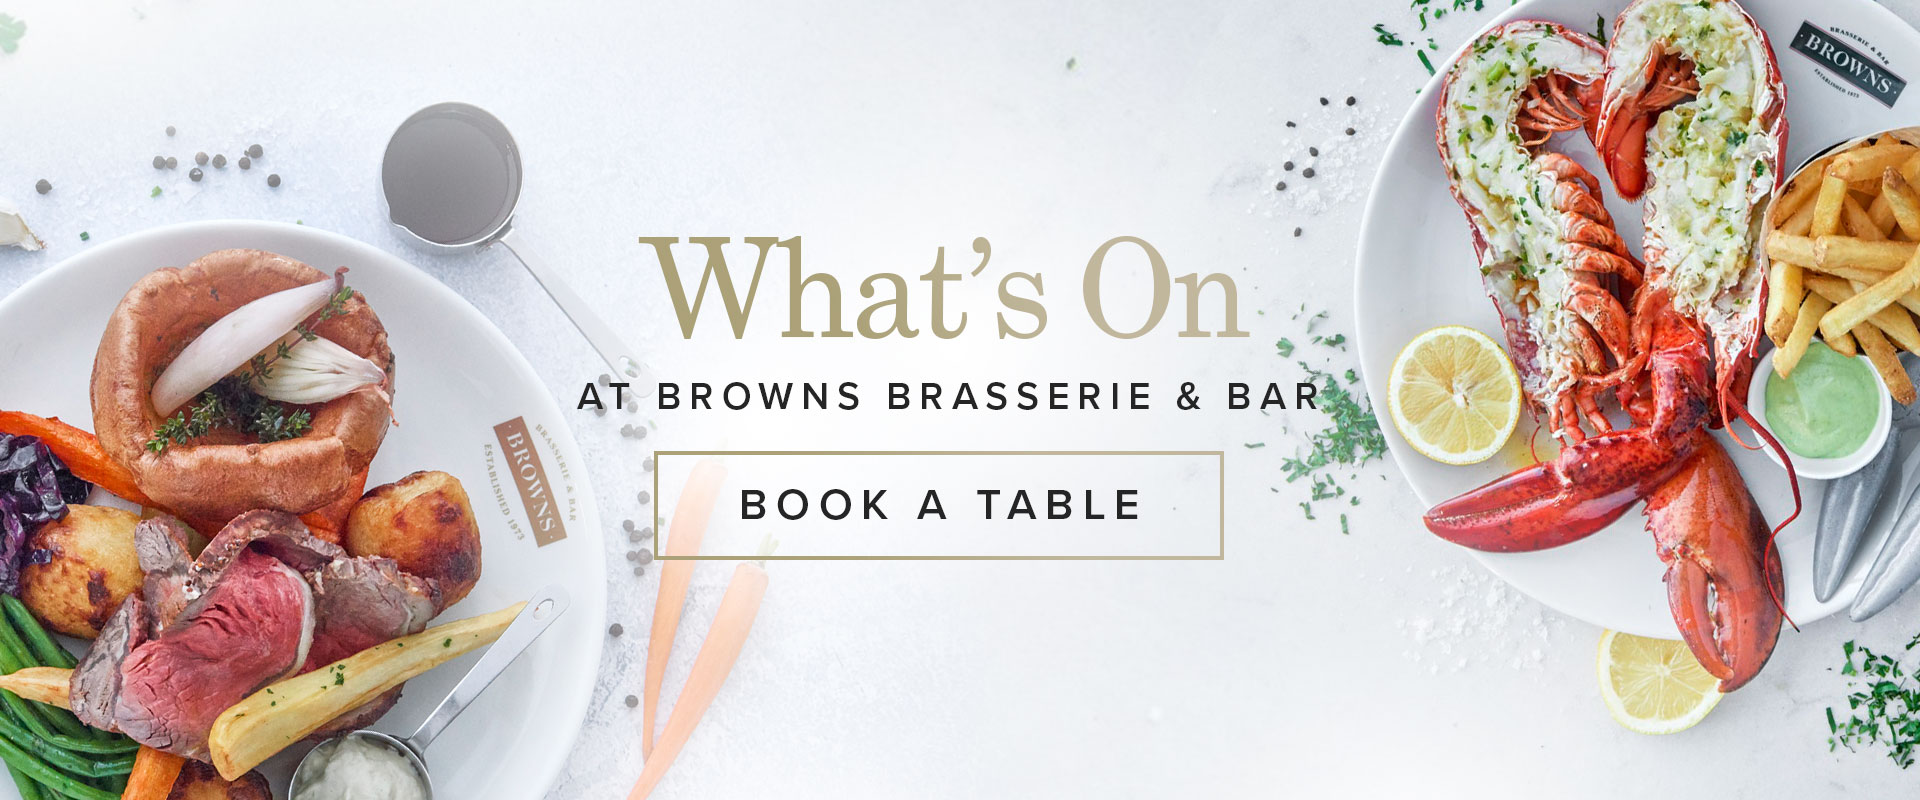 What's on at Browns Brighton | Browns